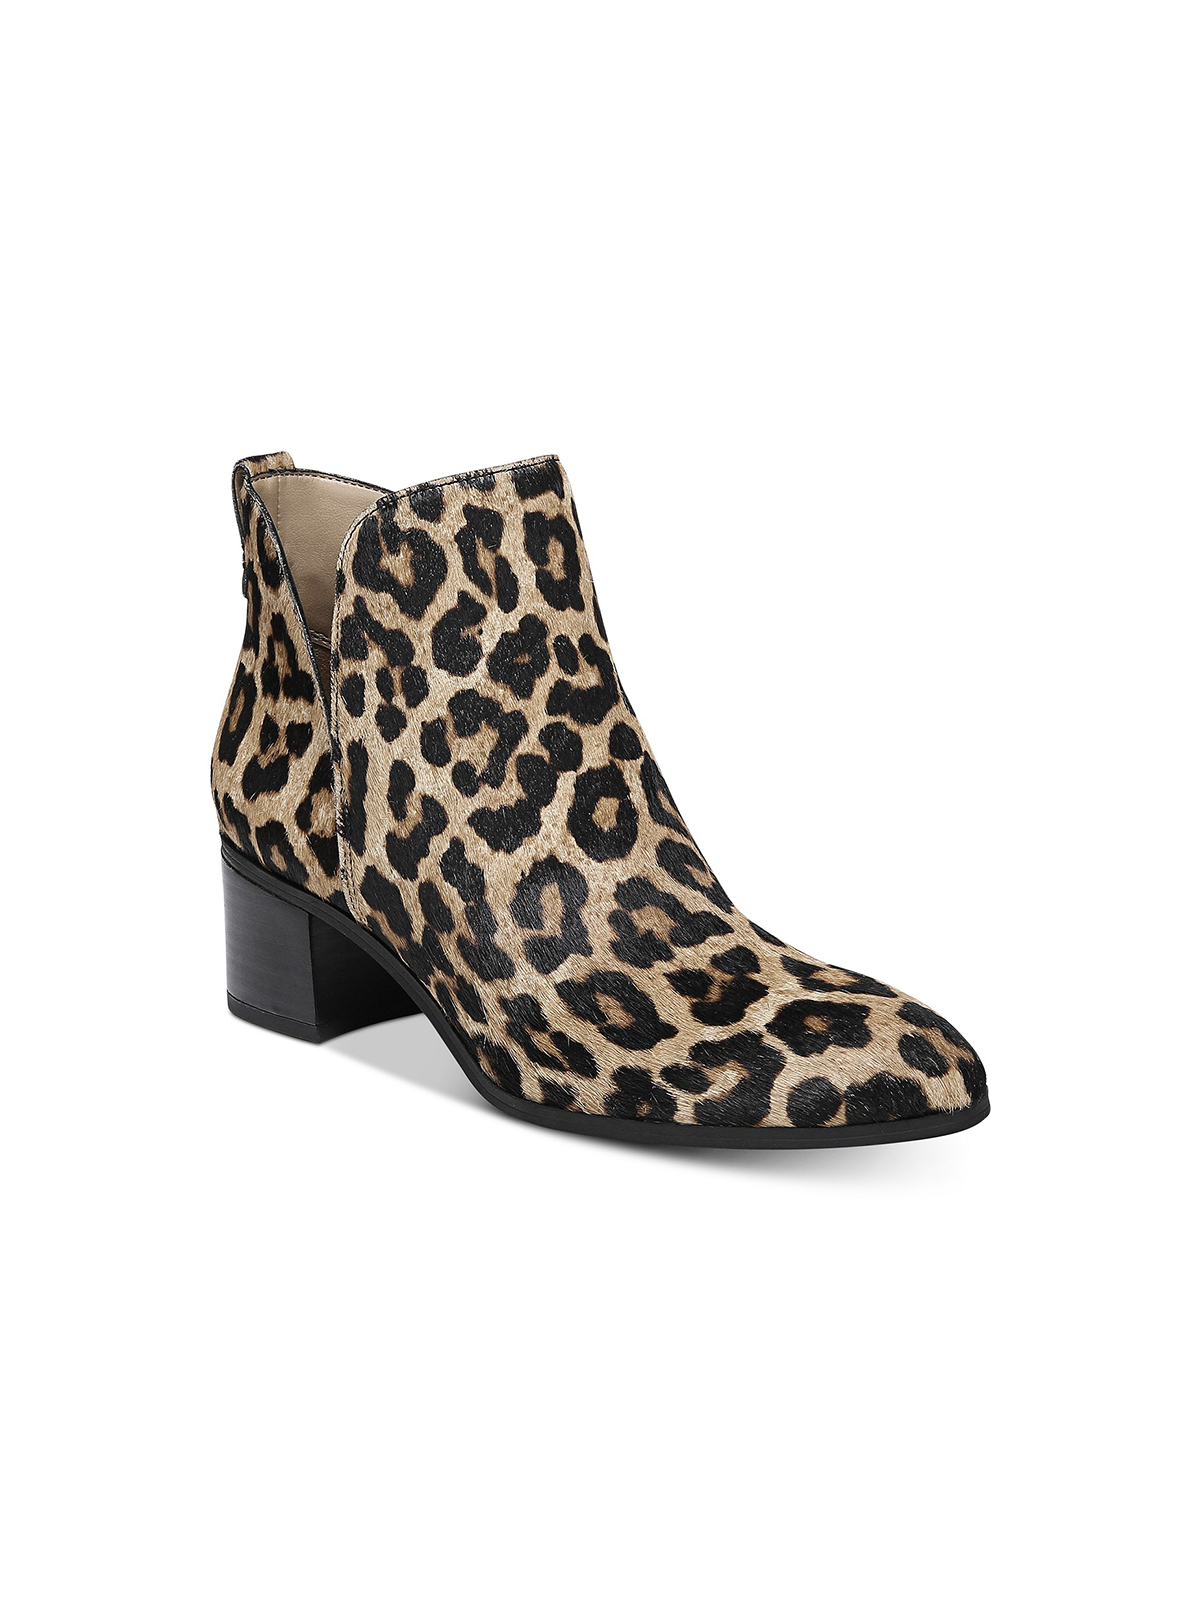 Cute Boots for Fall, Leopard Print